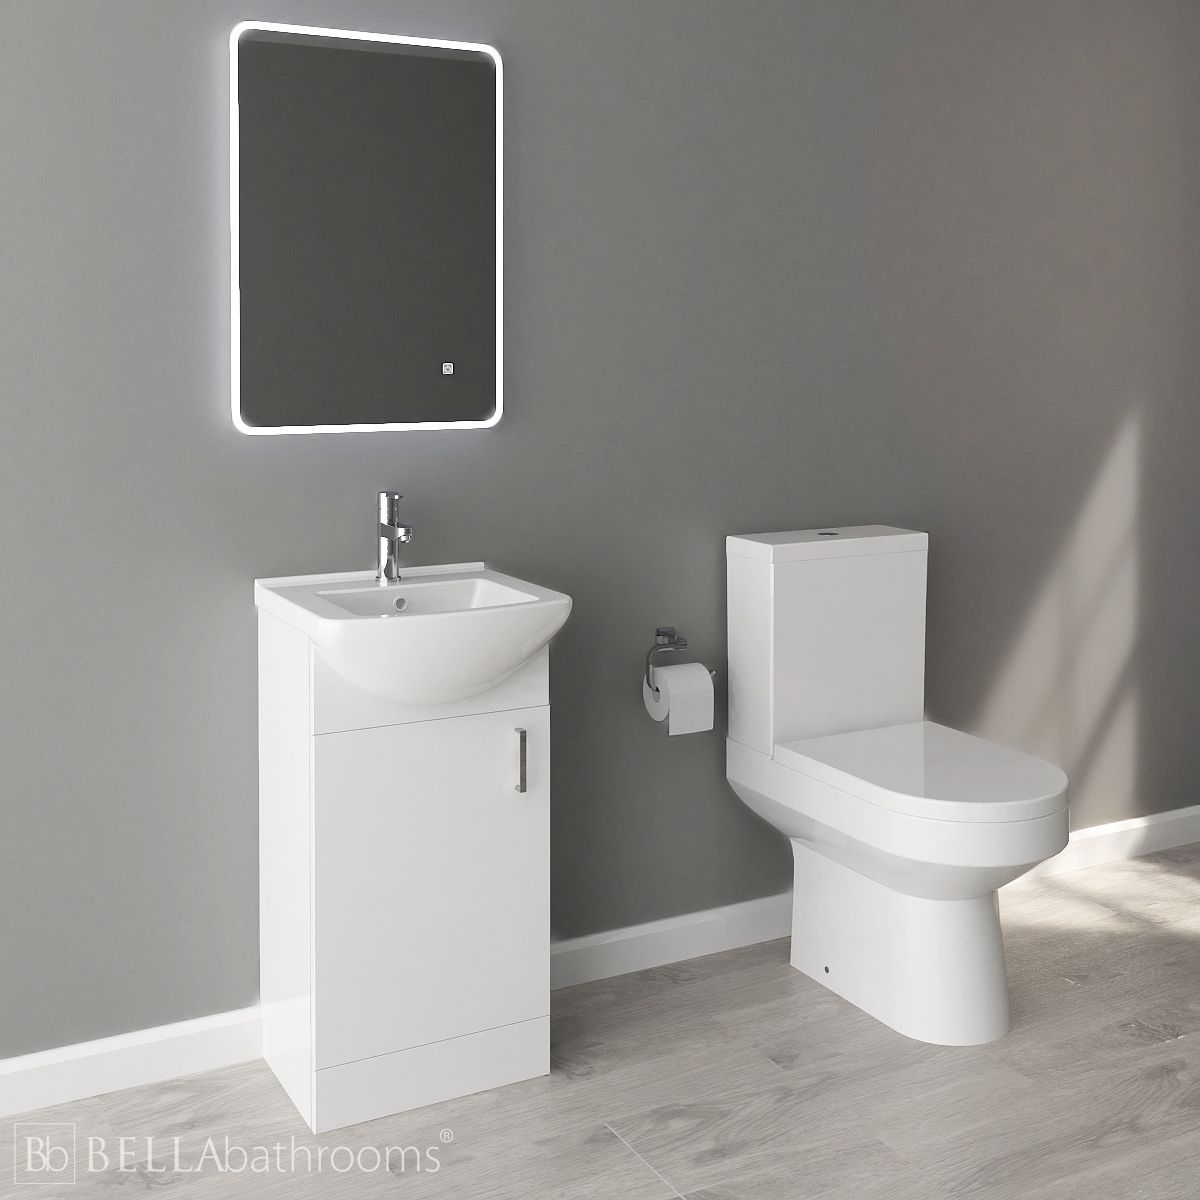 Nuie Deluxe High Gloss White Vanity Unit and Toilet Set 450mm